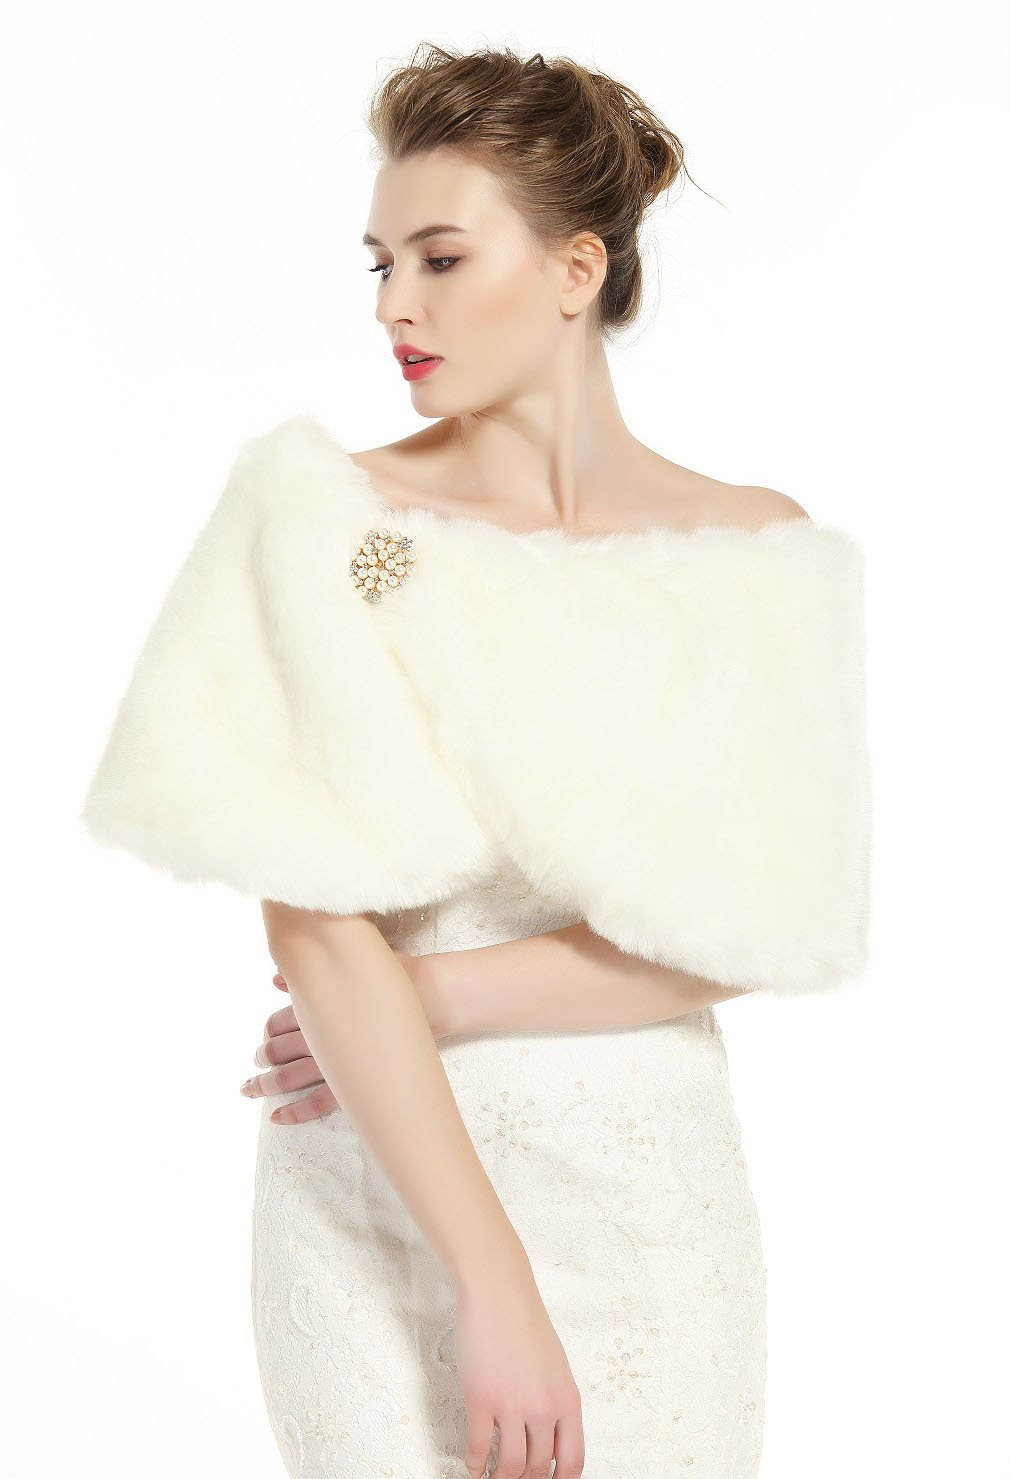 Faux Fur Wrap Shawl Women's Shrug Bridal Stole for Winter Wedding Party Free Brooch Ivory by BEAUTELICATE (Image #2)